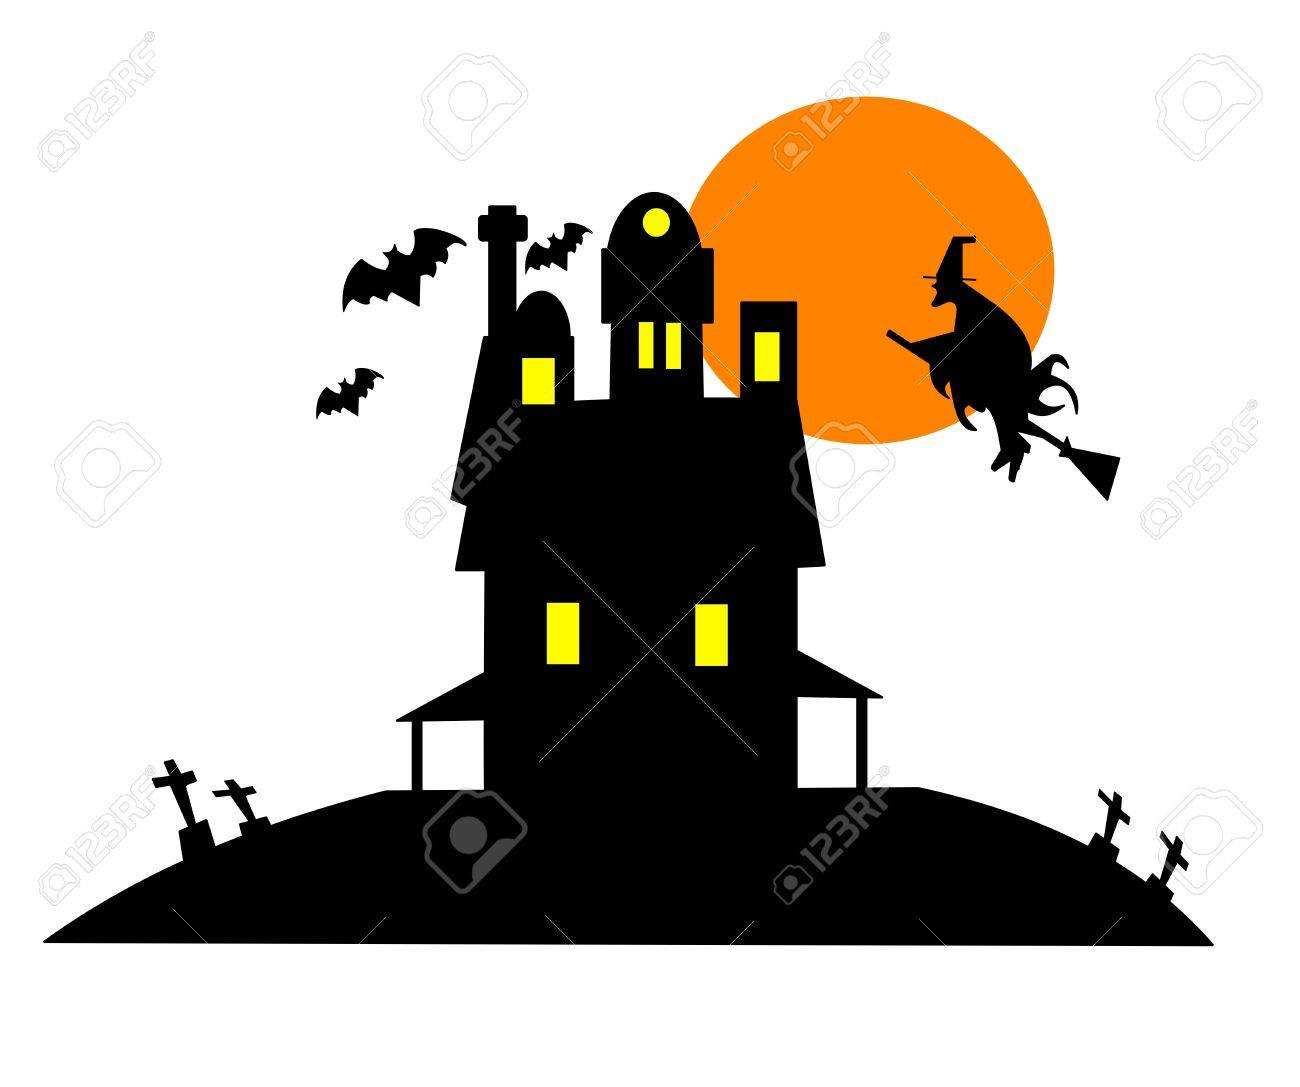 Haunted House Clip Art Over White Royalty Free Cliparts, Vectors ...